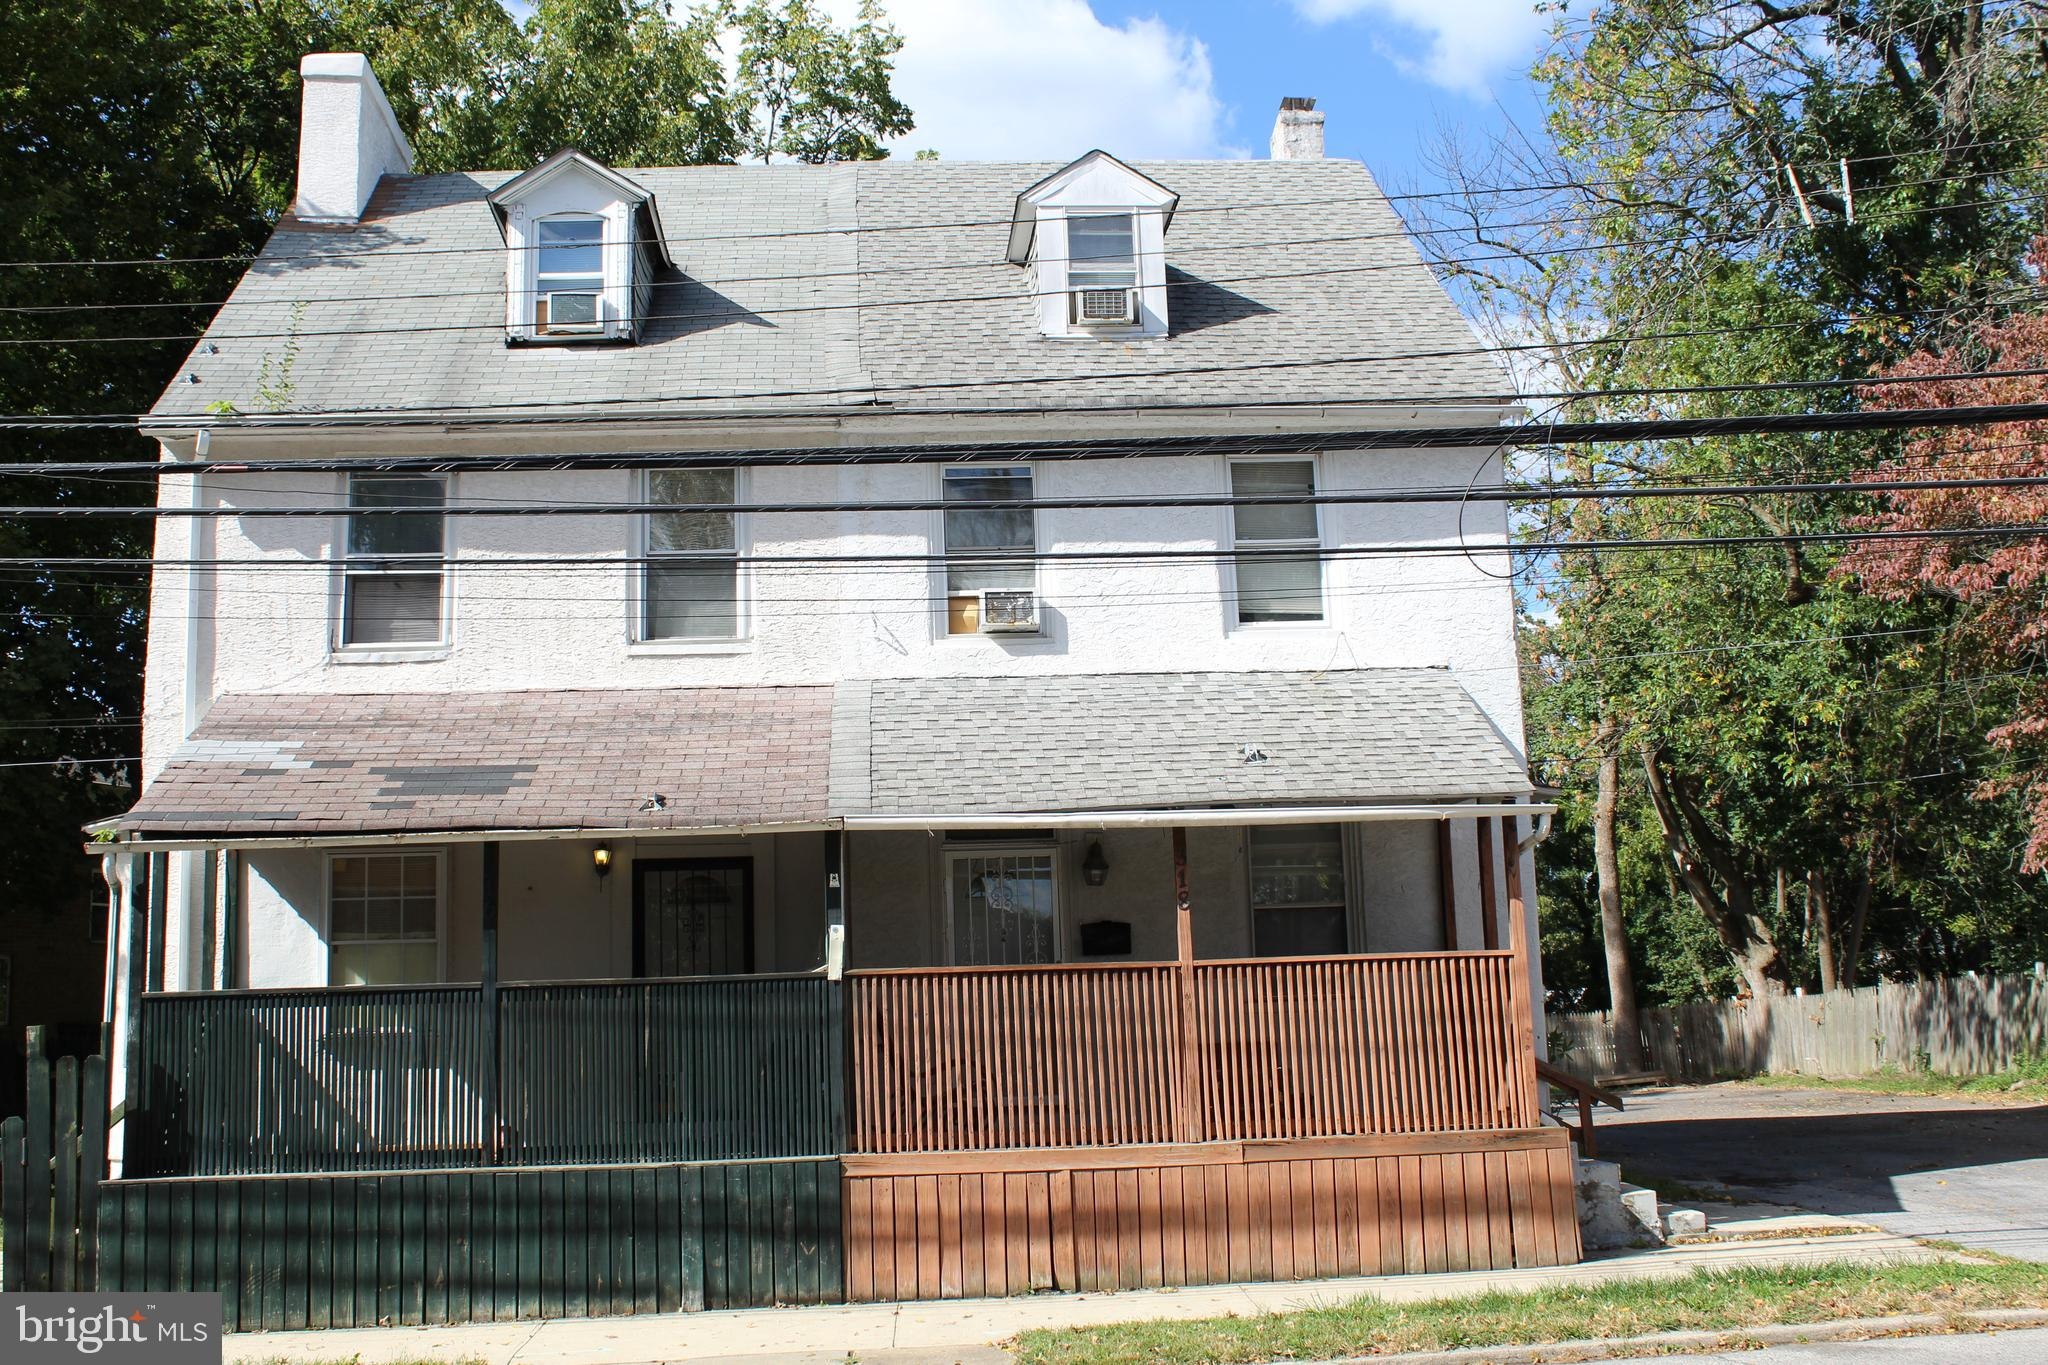 3-Bedroom House In Chester